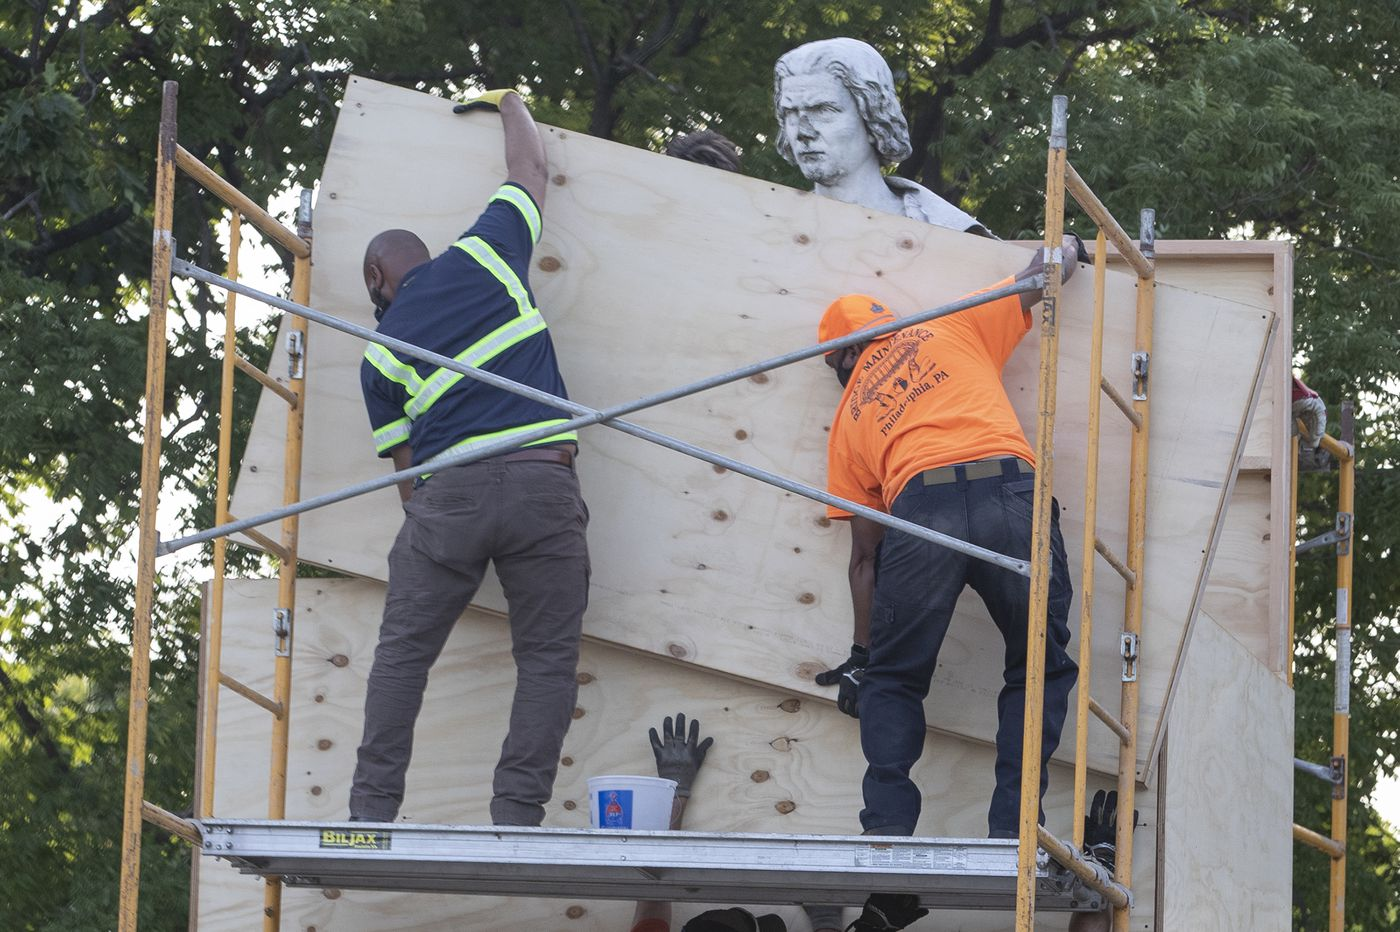 Philly prosecutor lobbying for statue: Columbus was a 'civil-rights activist'